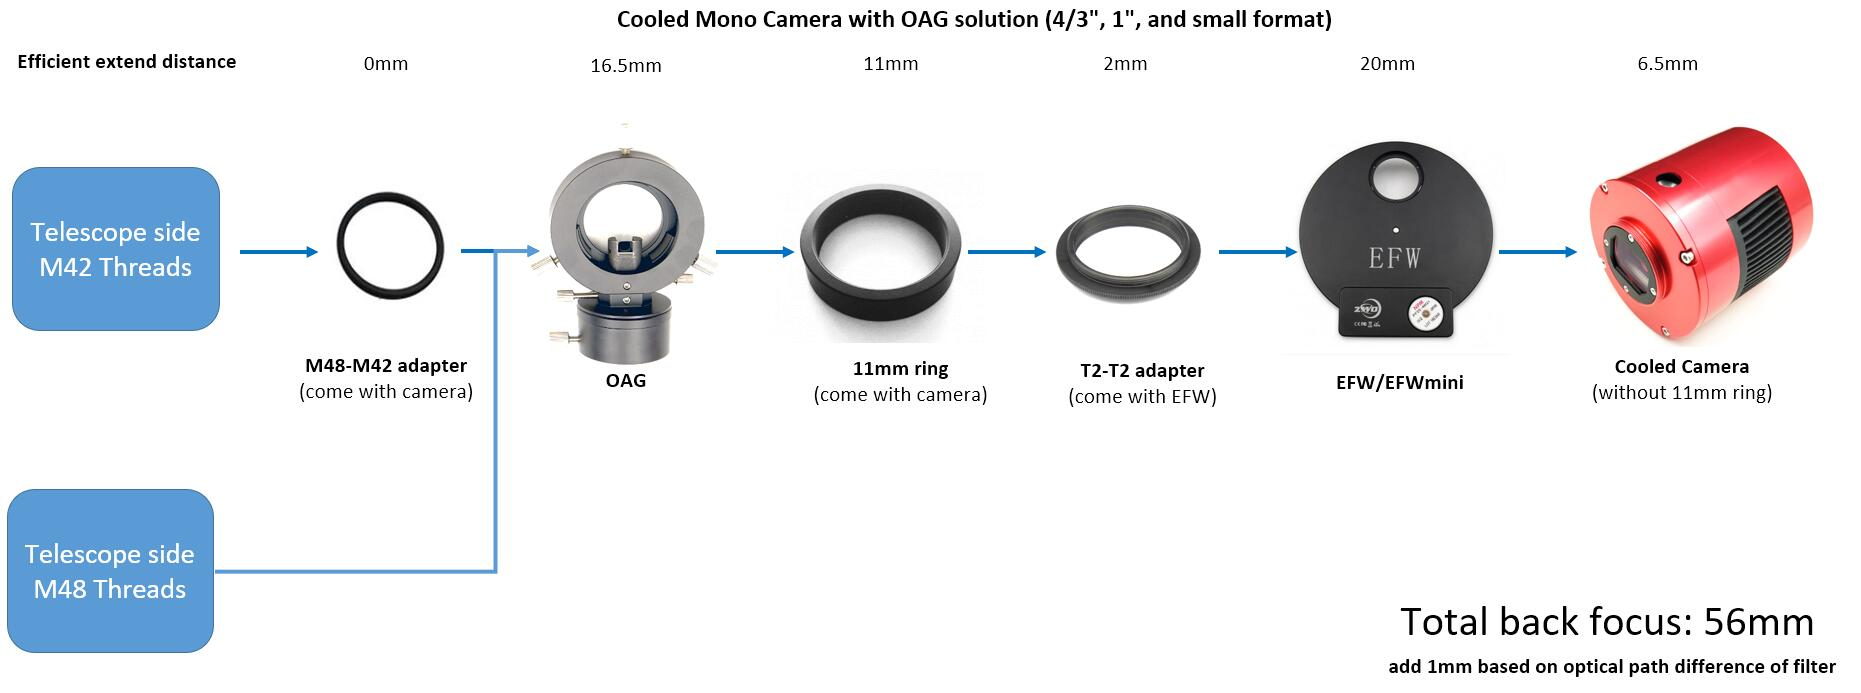 Cooled-Mono-Camera-with-OAG-solution.jpg